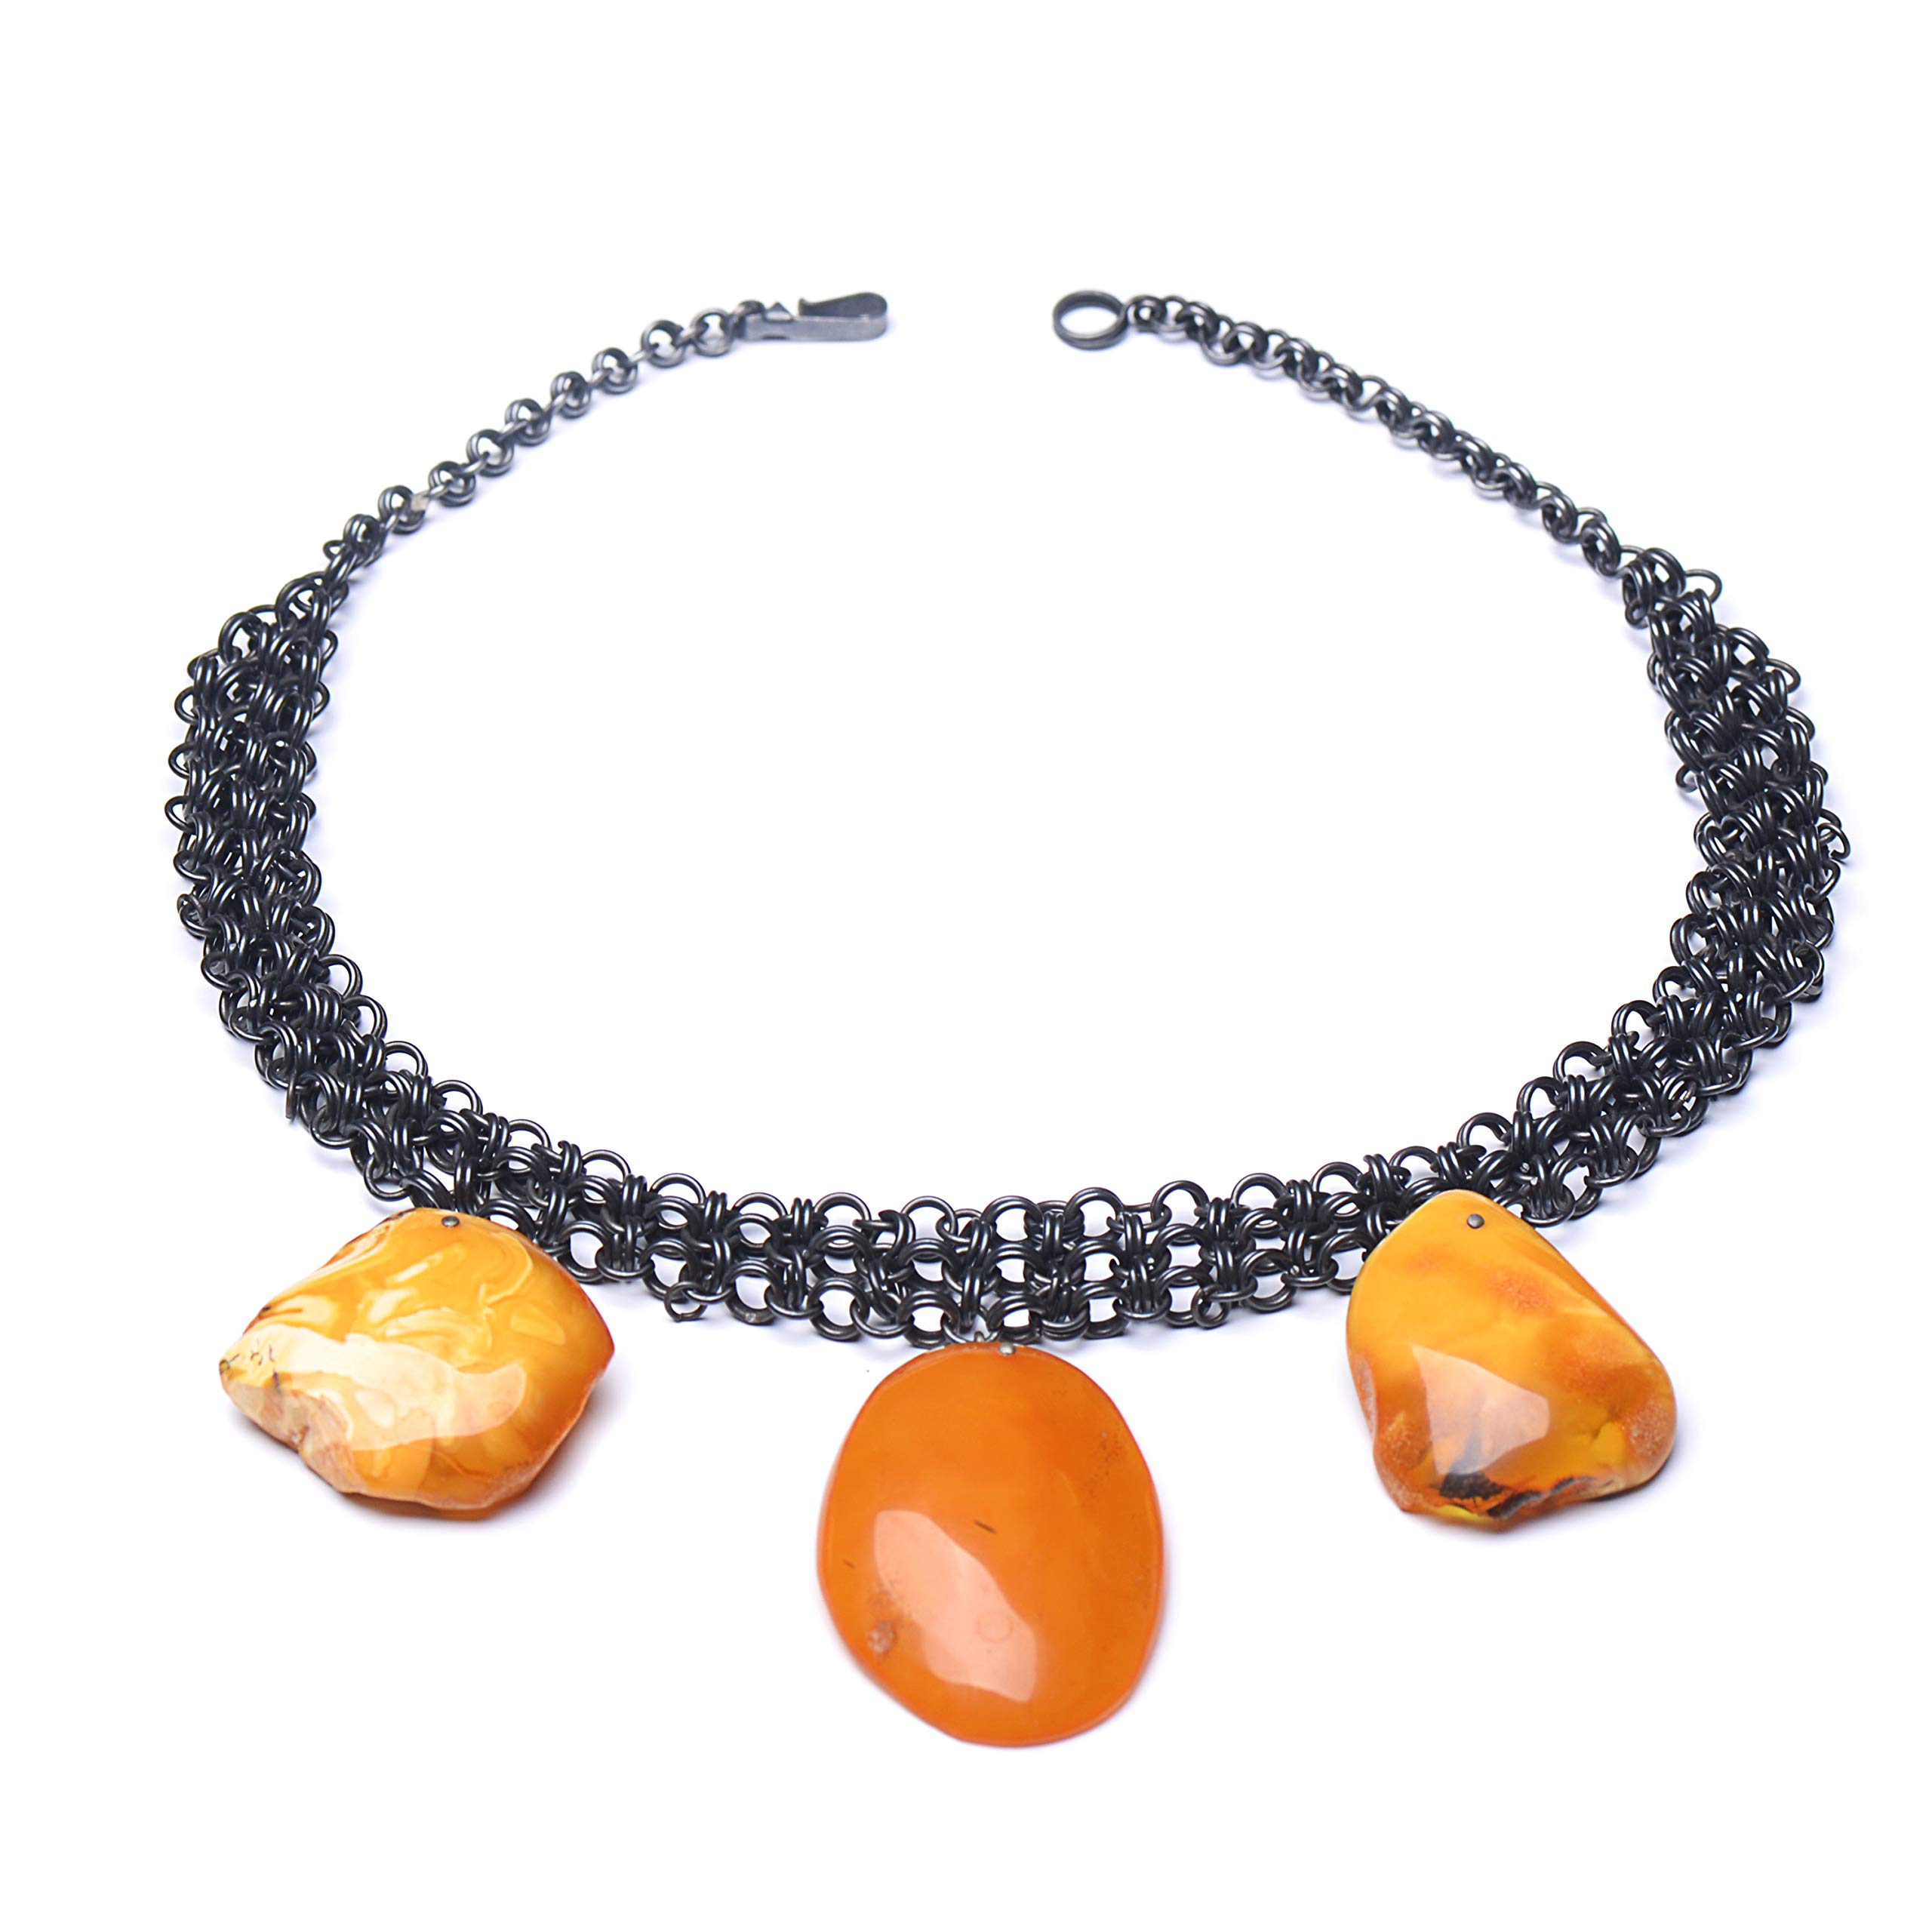 Necklace with Amber Pendants - Amber Stones - Baltic Amber Necklace - Amber Jewelry for Woman by Genuine Amber